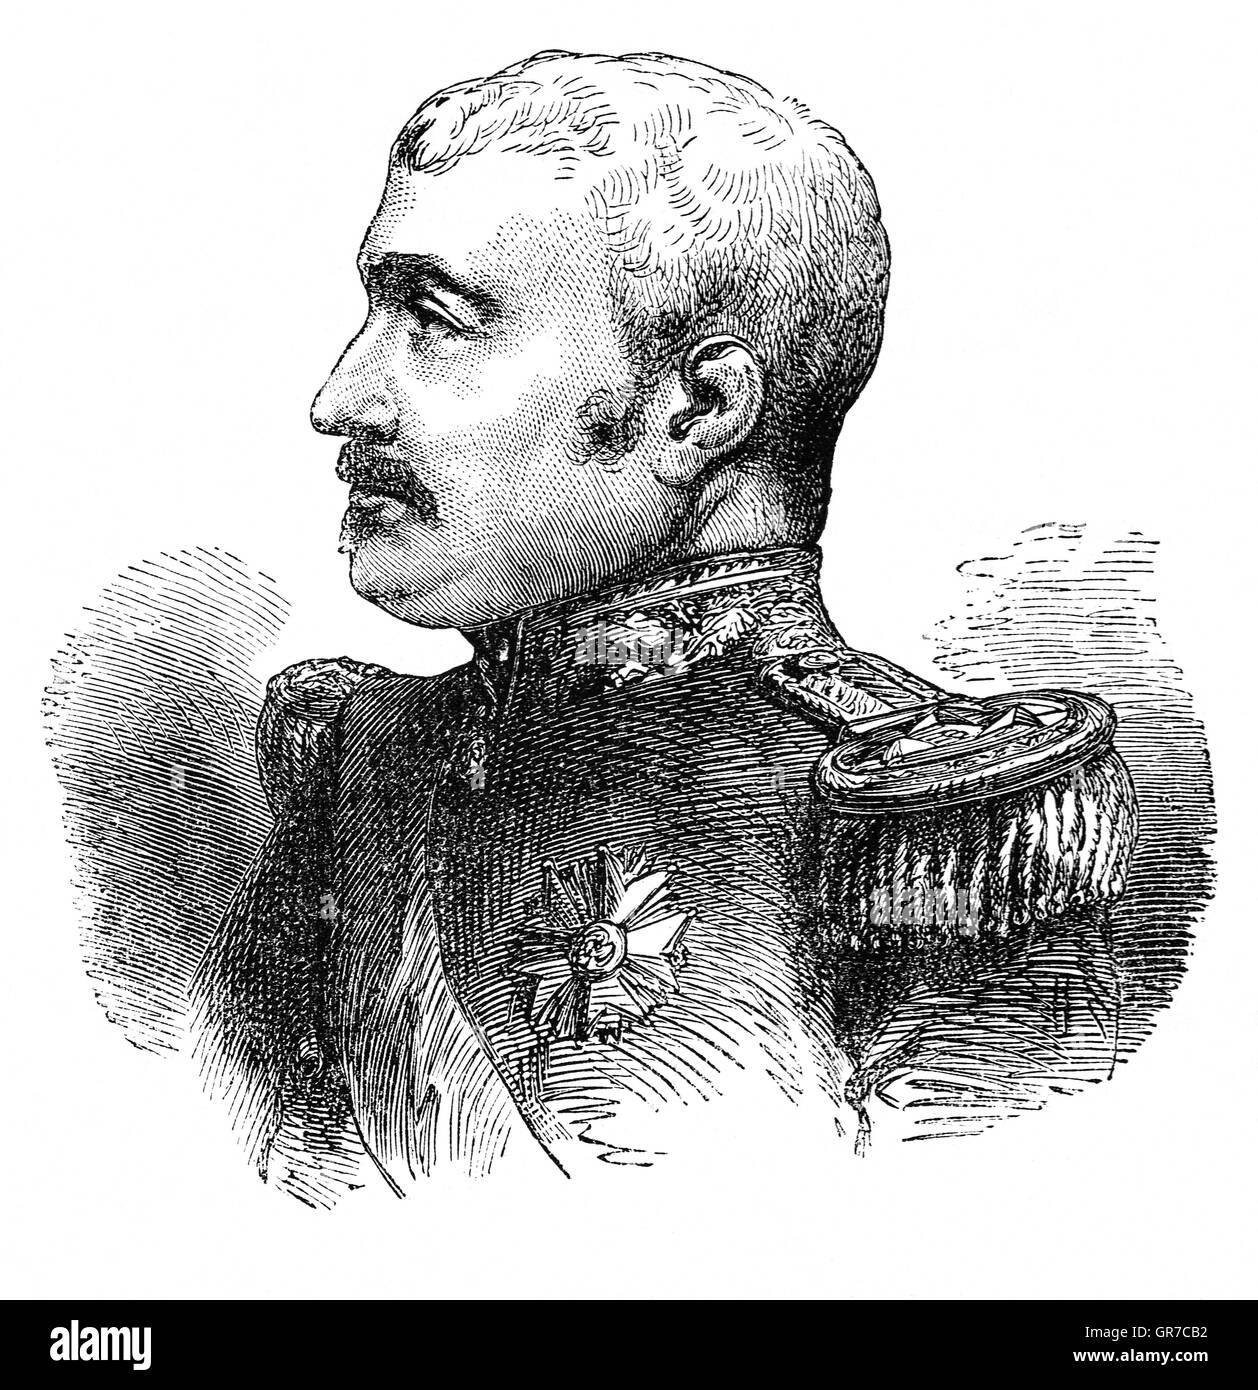 Aimable-Jean-Jacques Pélissier, 1st Duc de Malakoff (1794 –1864), was a Marshal of France.   In 1855 he succeeded - Stock Image